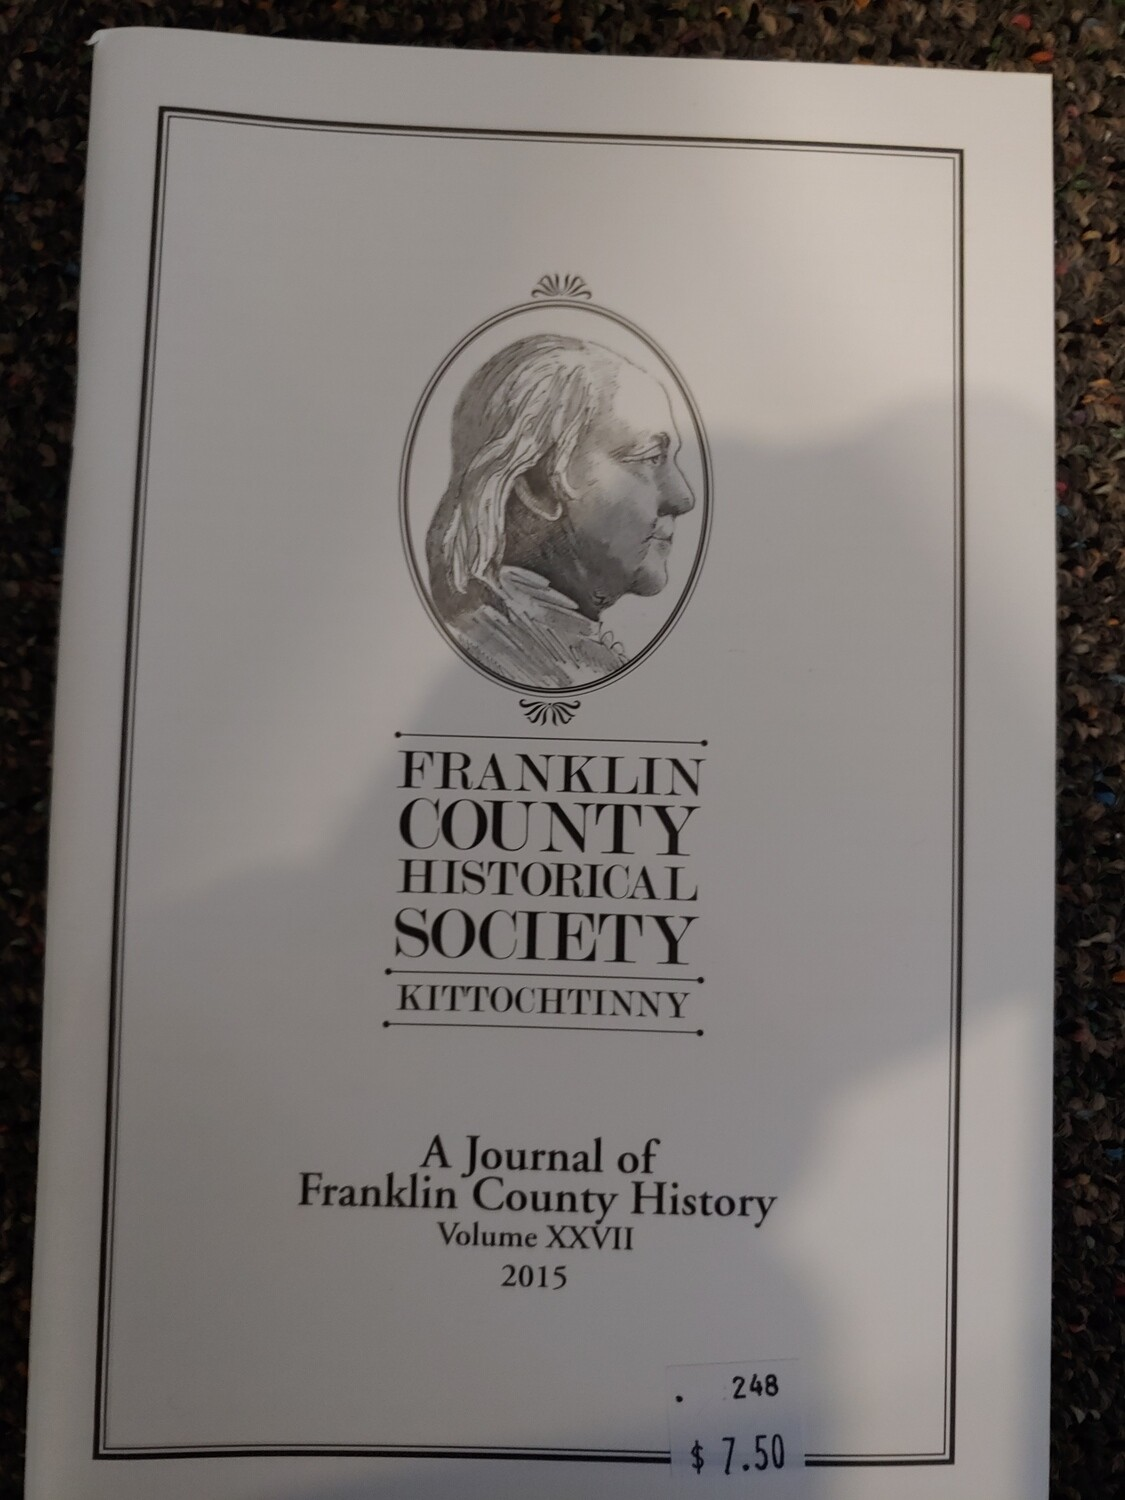 Franklin County Historical Society Journal 2015